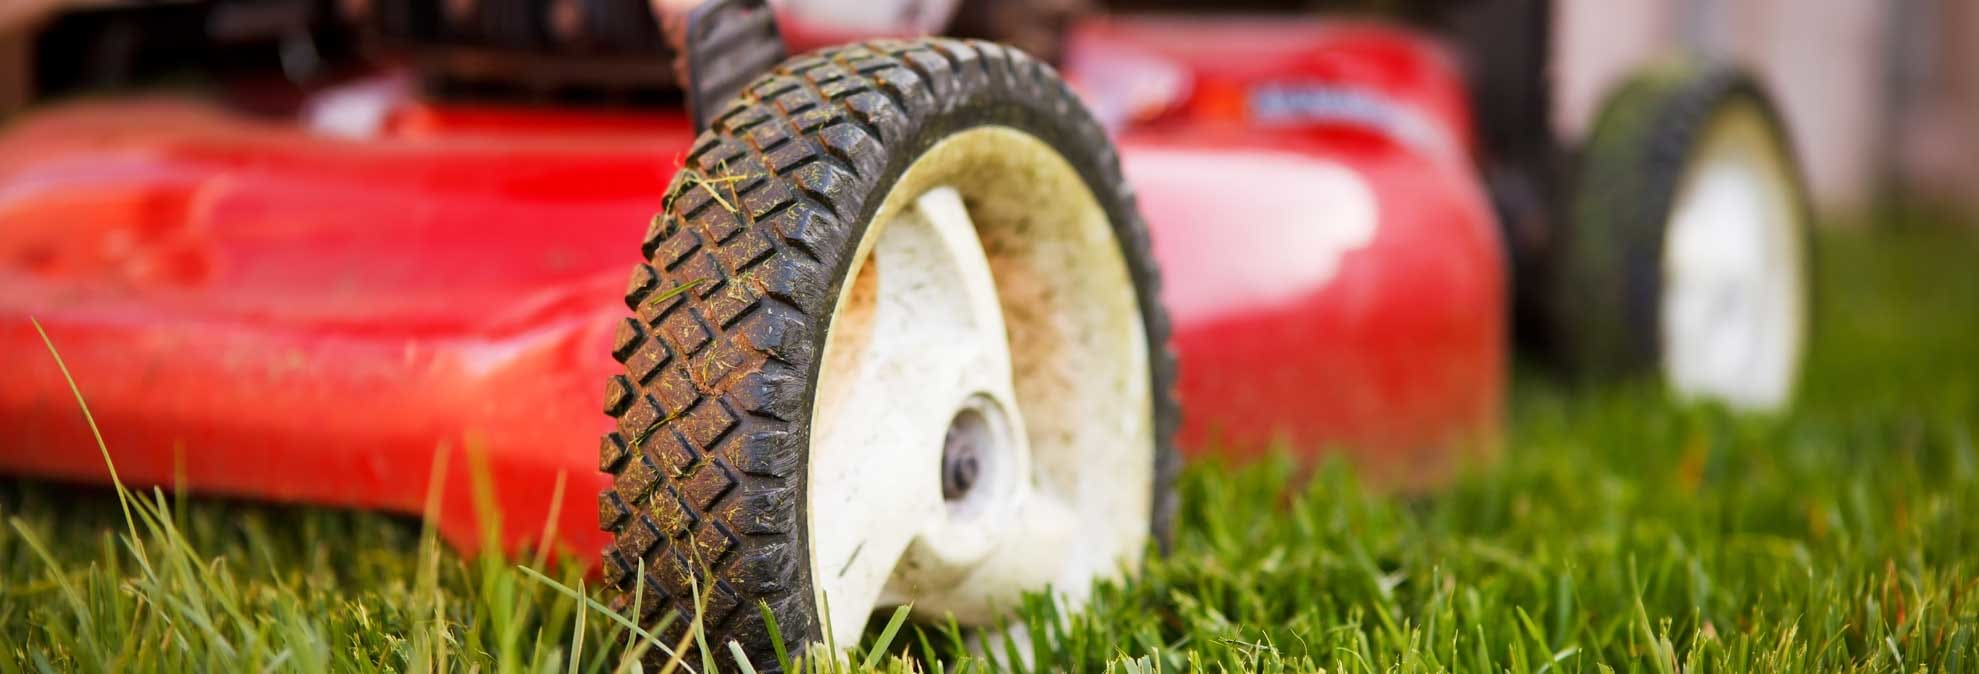 How To Tell If Used Lawn Equipment Is A Good Deal